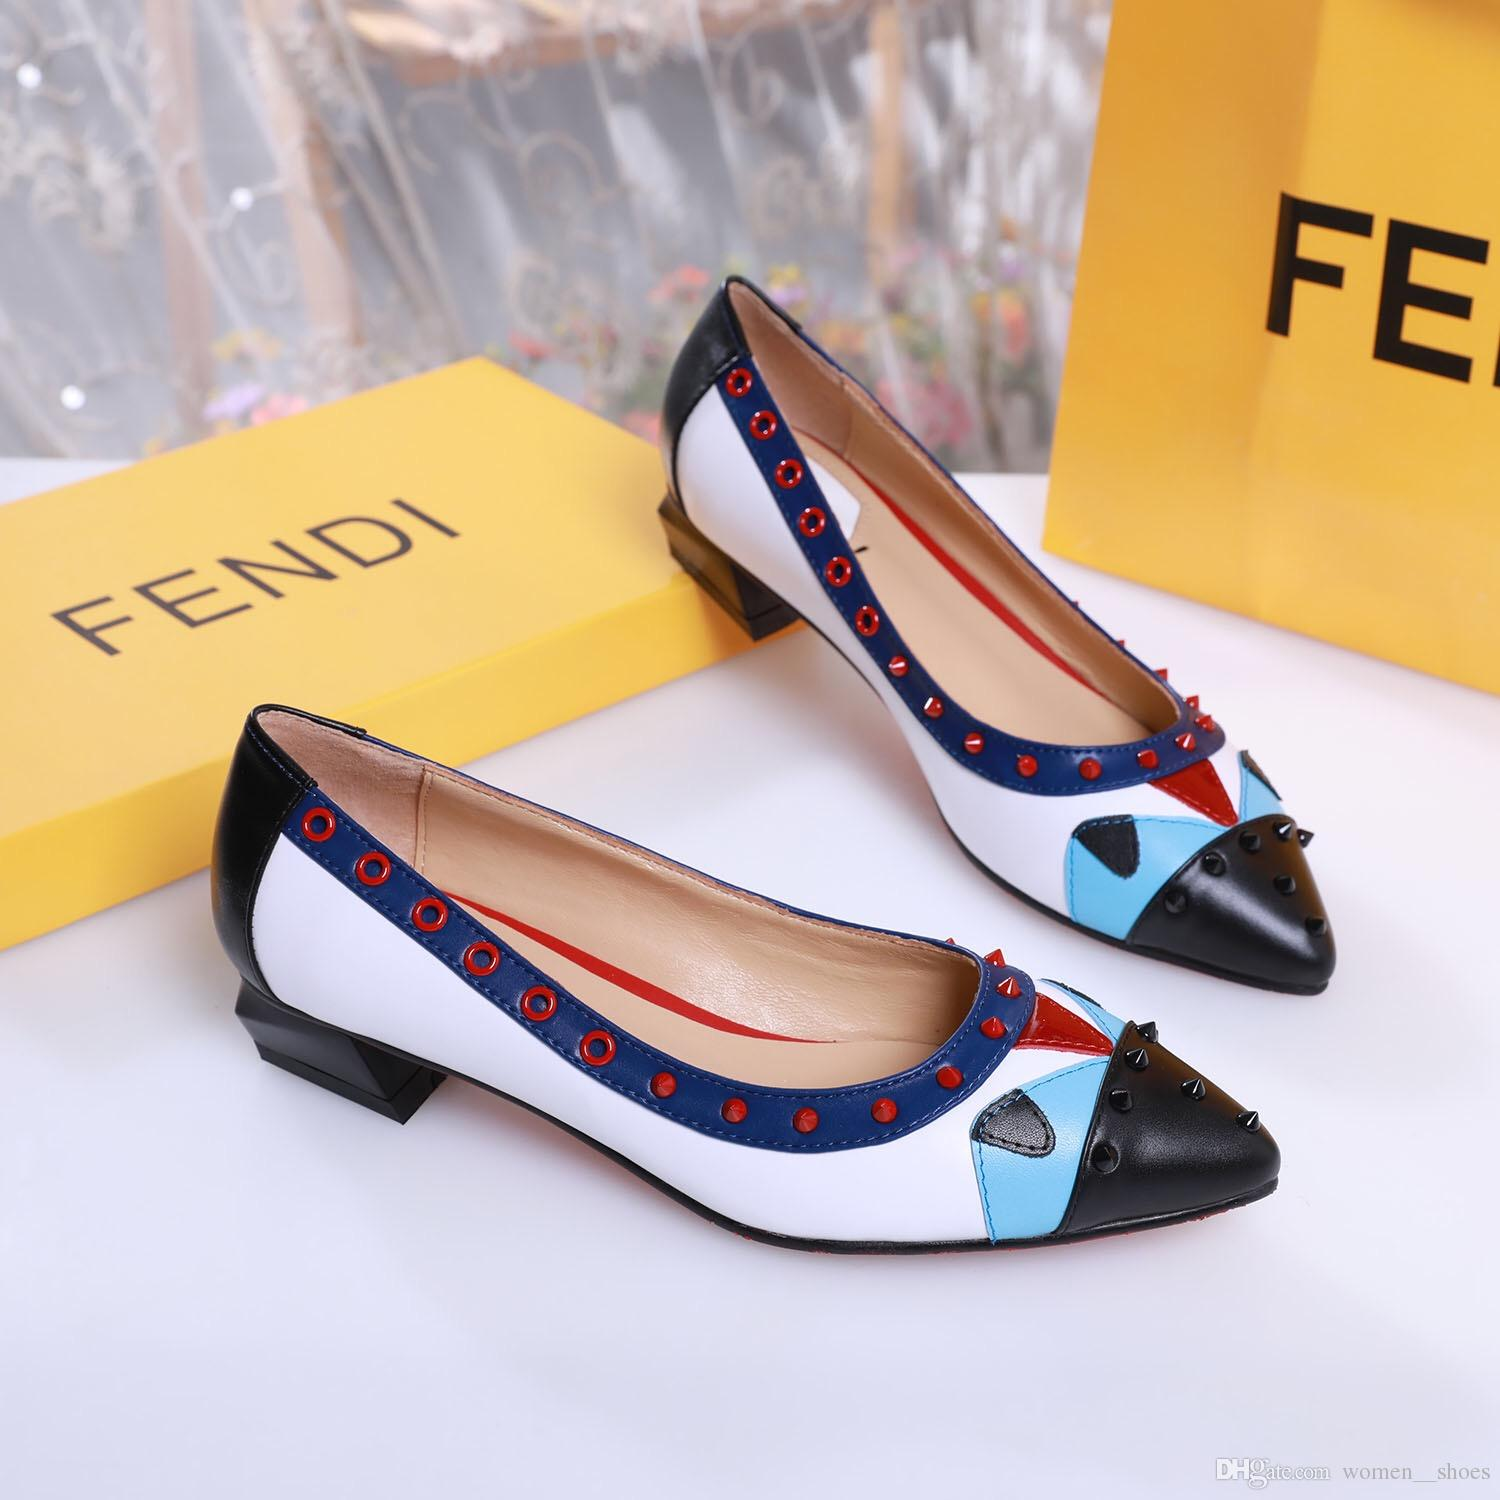 2019 Fashion Designer Shoes Women Shoes Designer High Heels Womens Heels Shoes Size 4 5 8 42 Prom Shoes Hiking Shoes From Women Shoes 101 31 Dhgate Com